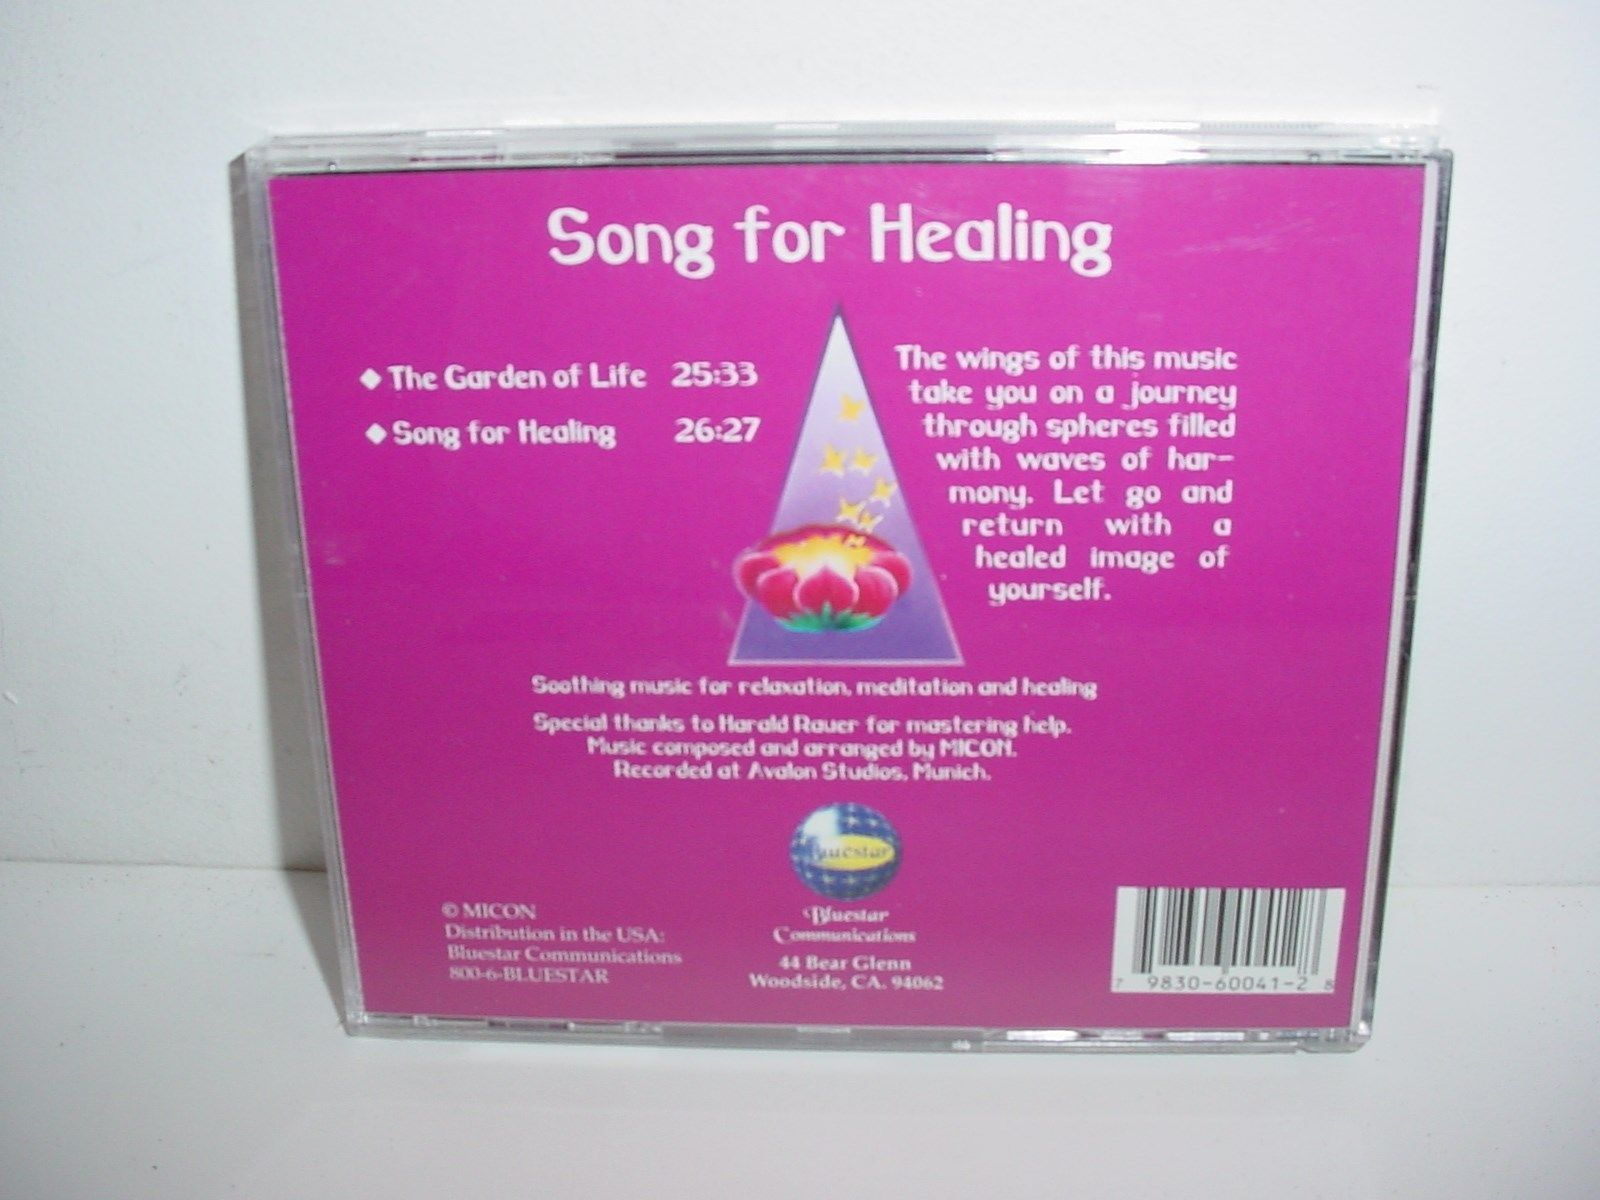 Song for Healing by Micon Music CD